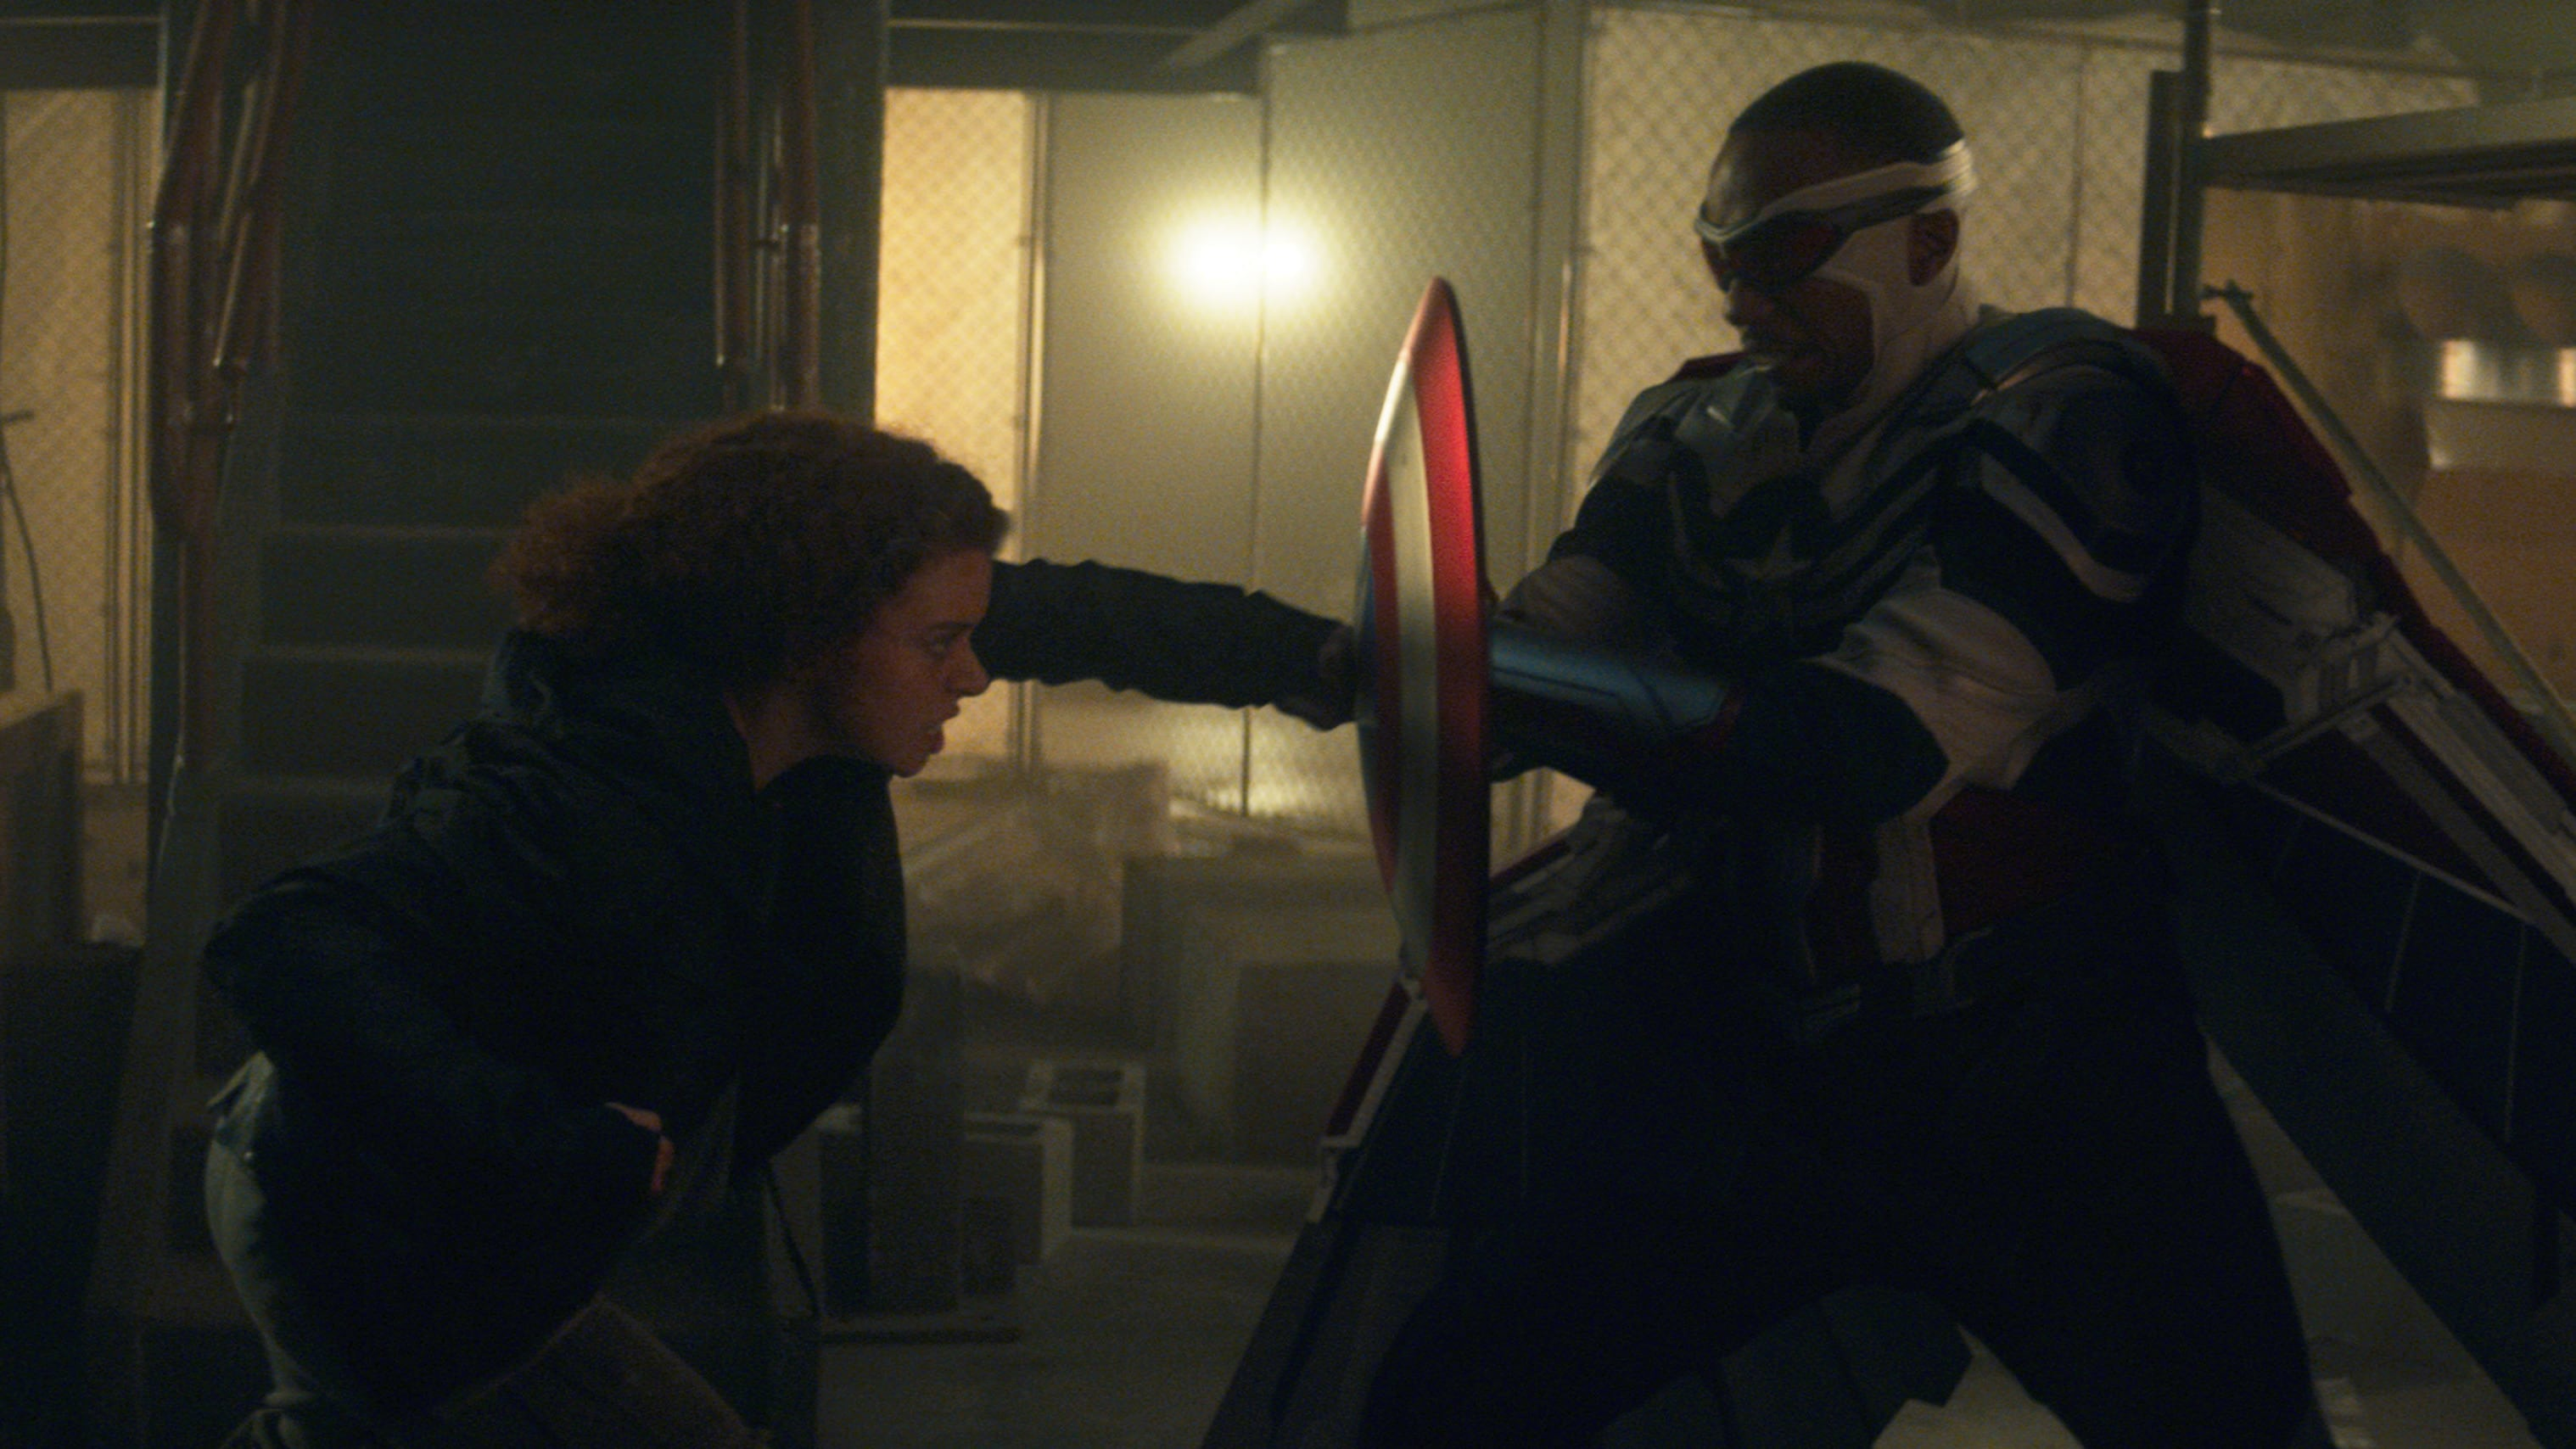 (L-R): Karli Morgenthau (Erin Kellyman) and Falcon/Sam Wilson (Anthony Mackie) in Marvel Studios' THE FALCON AND THE WINTER SOLDIER exclusively on Disney+. Photo courtesy of Marvel Studios. ©Marvel Studios 2021. All Rights Reserved.